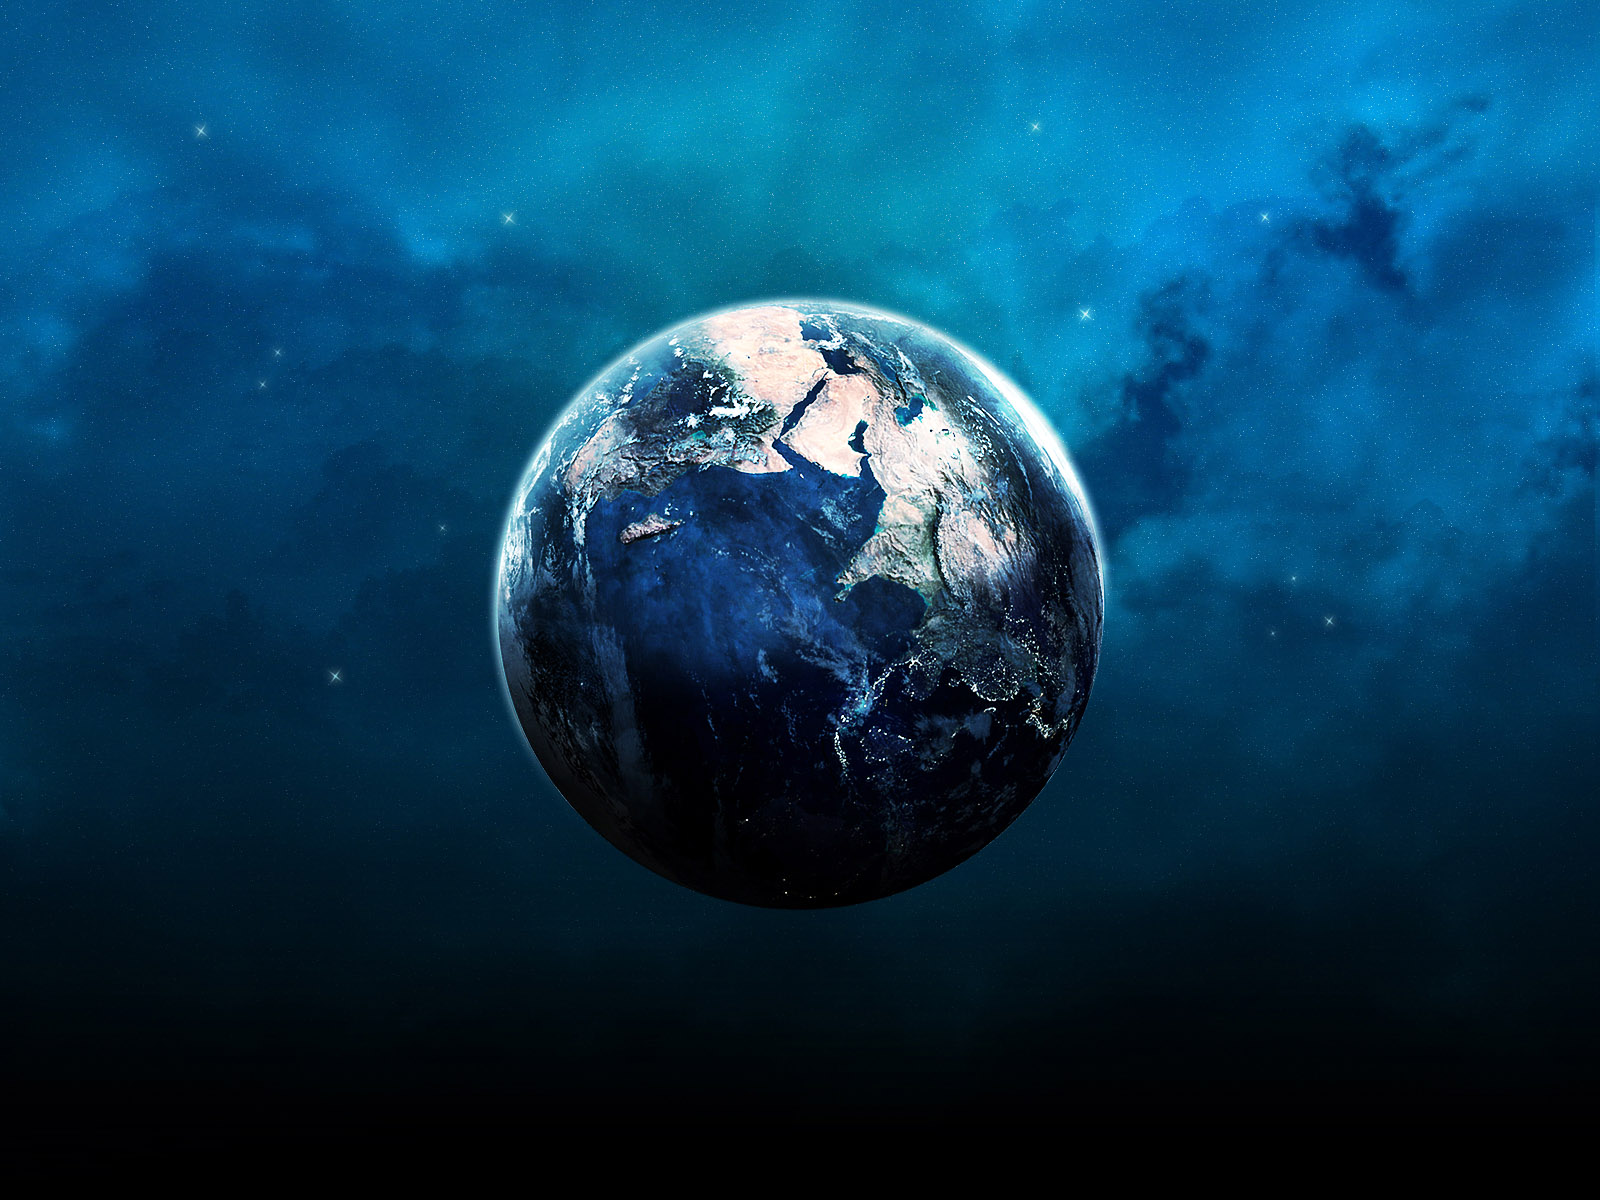 Earth HD Wallpaper Free Download